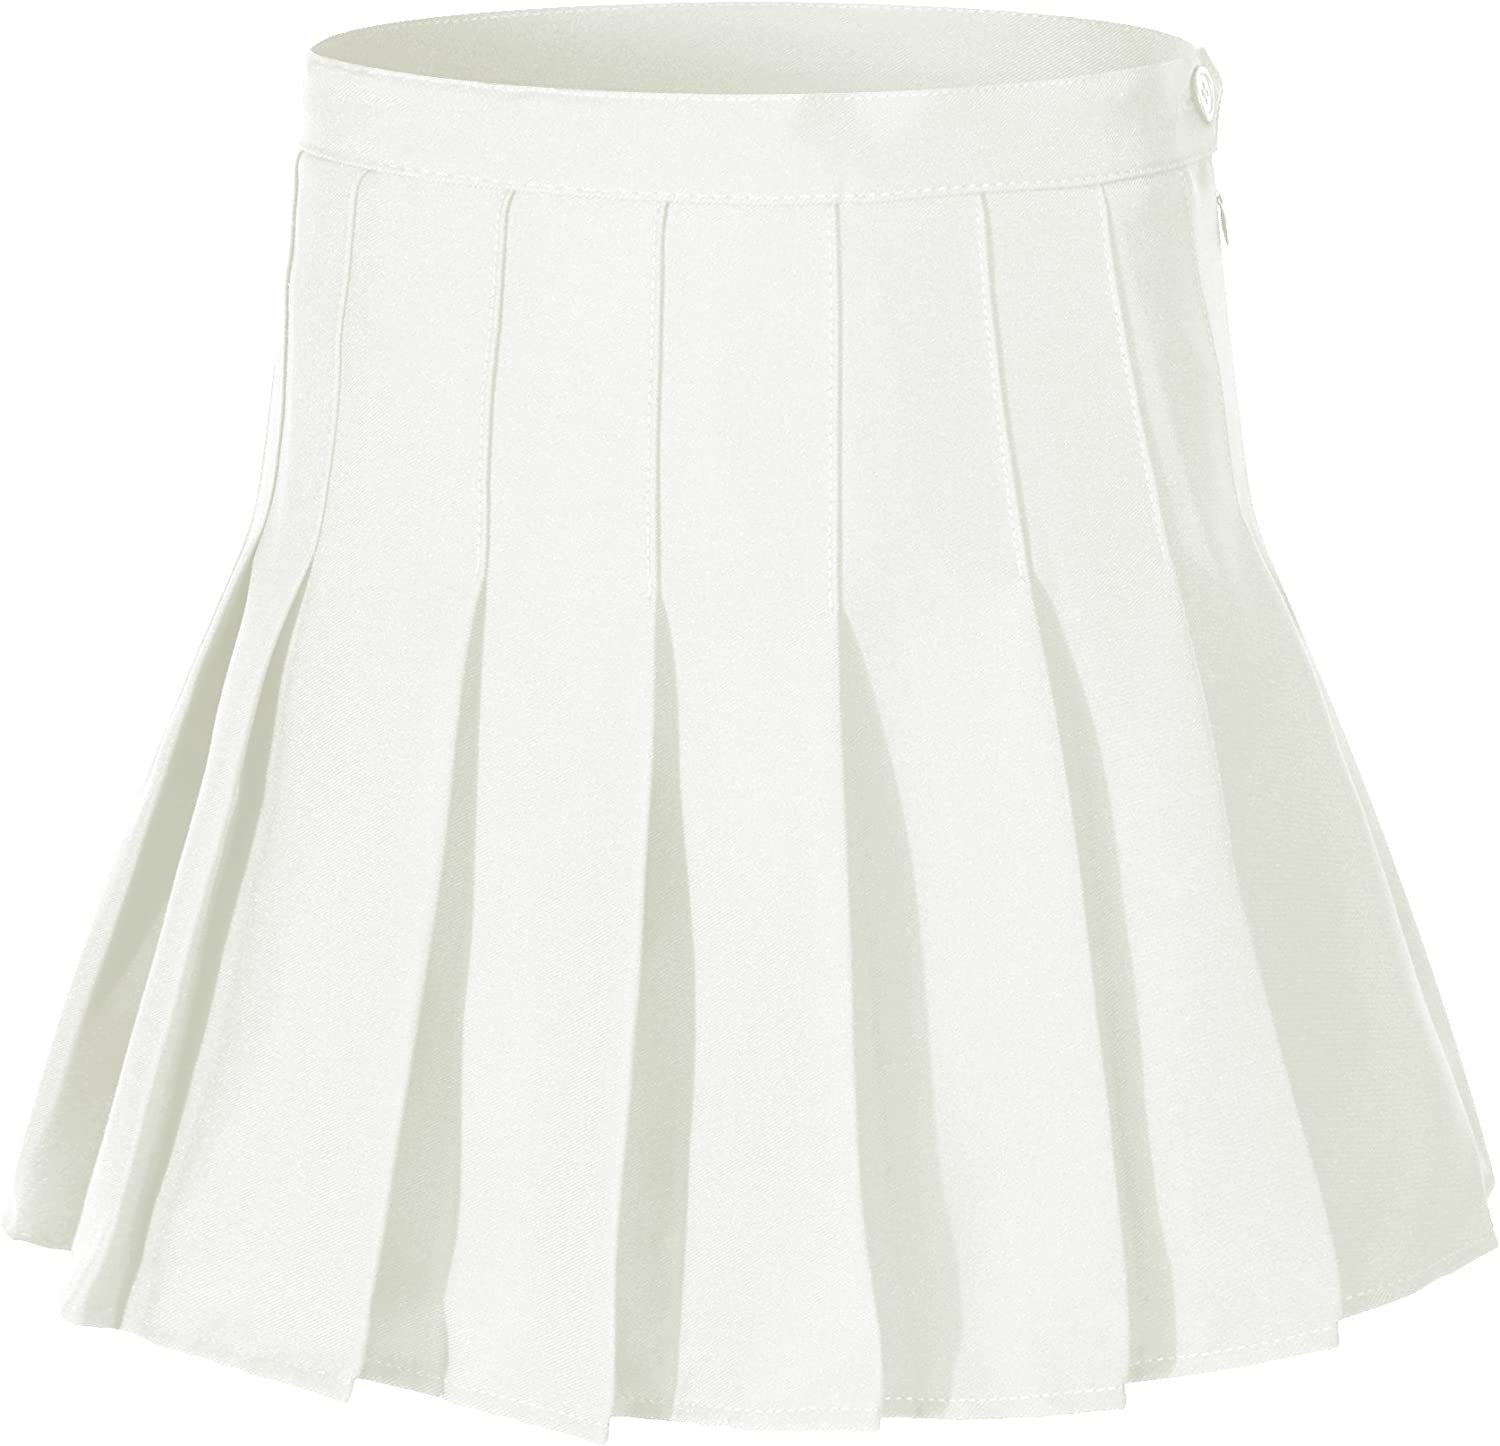 Beautifulfashionlife Girl`s Short Pleated School Dresses for Teen Girls Tennis Scooters Skirts: Clothing